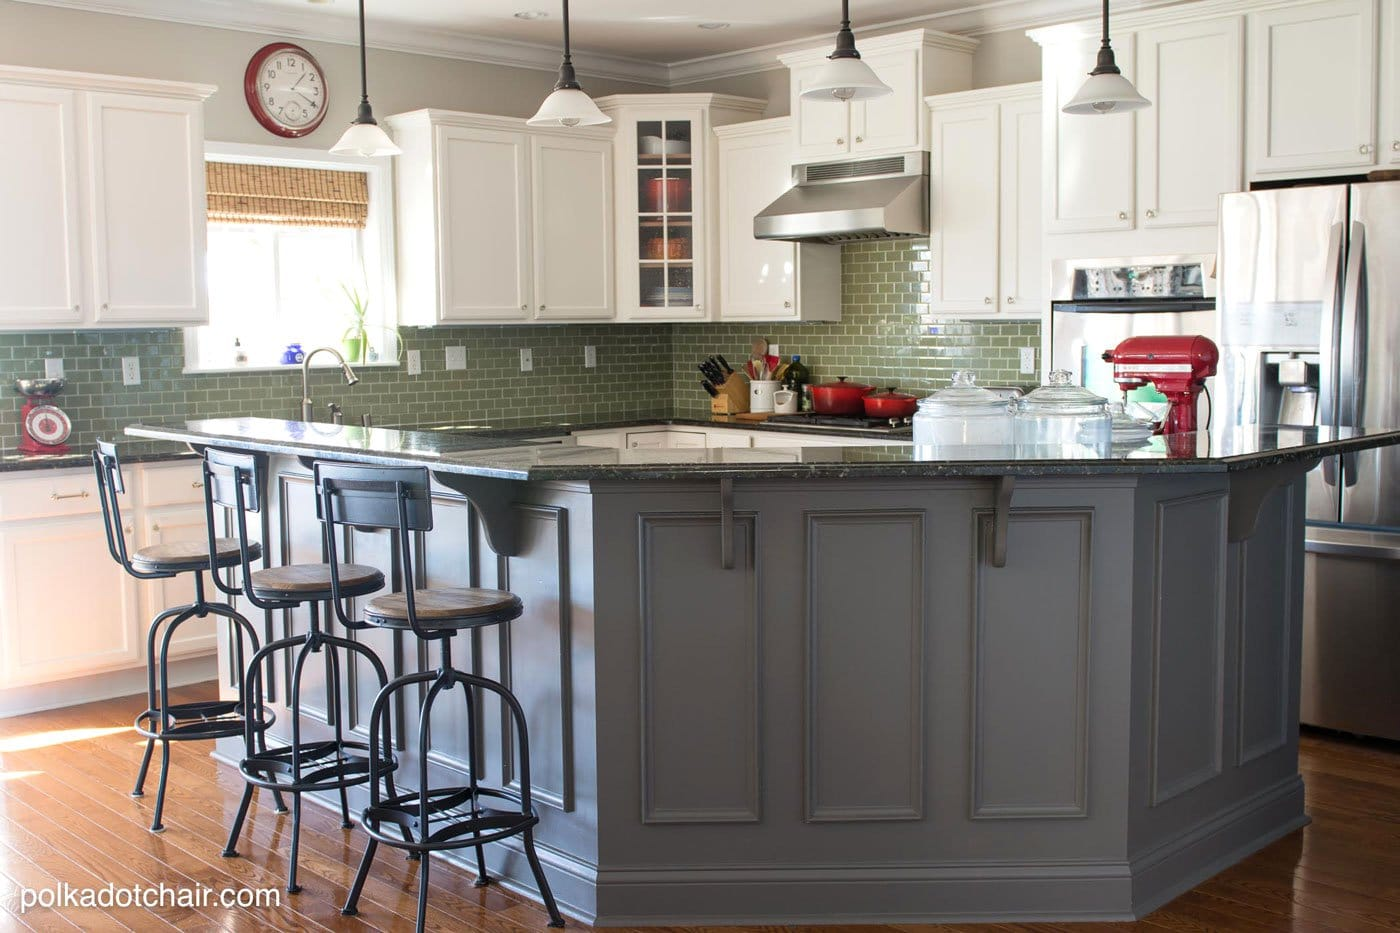 tips for painting kitchen cabinets painting kitchen cabinets Before and After Photos of a Kitchen that had it s Cabinets Painted White lots of